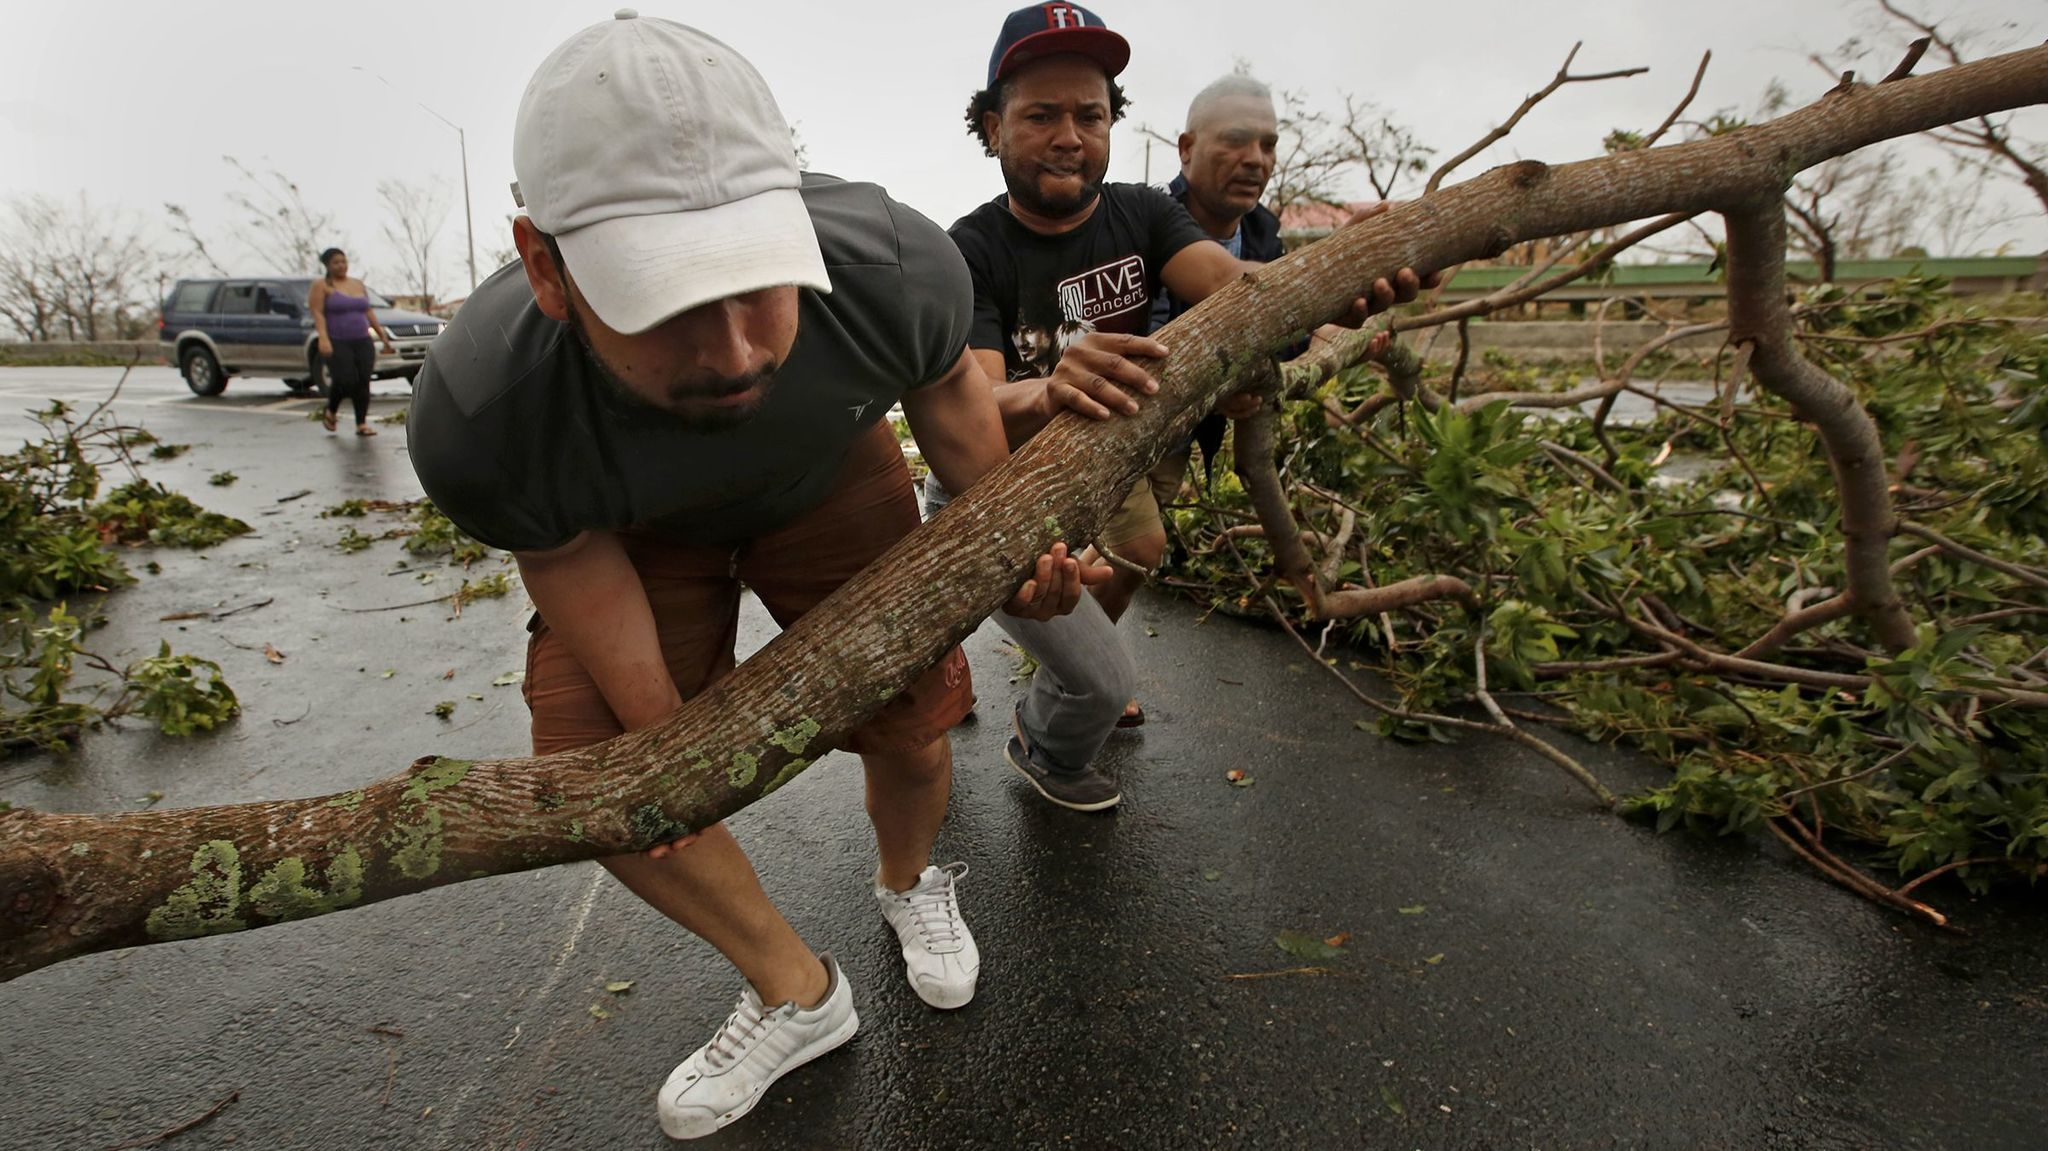 Roberto Flores, left, helps move large tree limbs from a major road in San Juan after Hurricane Maria tore through the Puerto Rican capital.